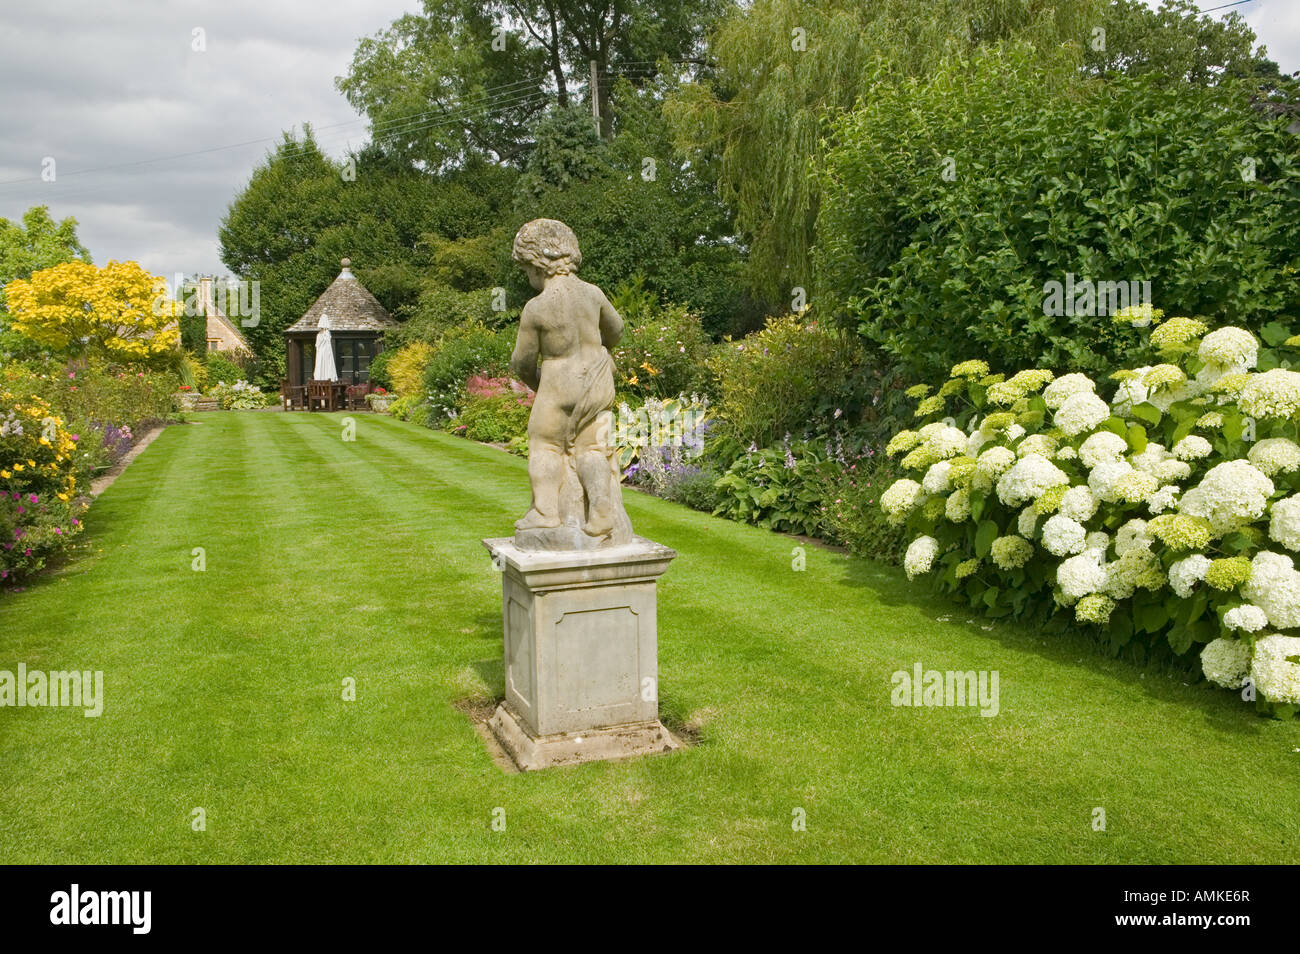 Lawn with statue - Stock Image